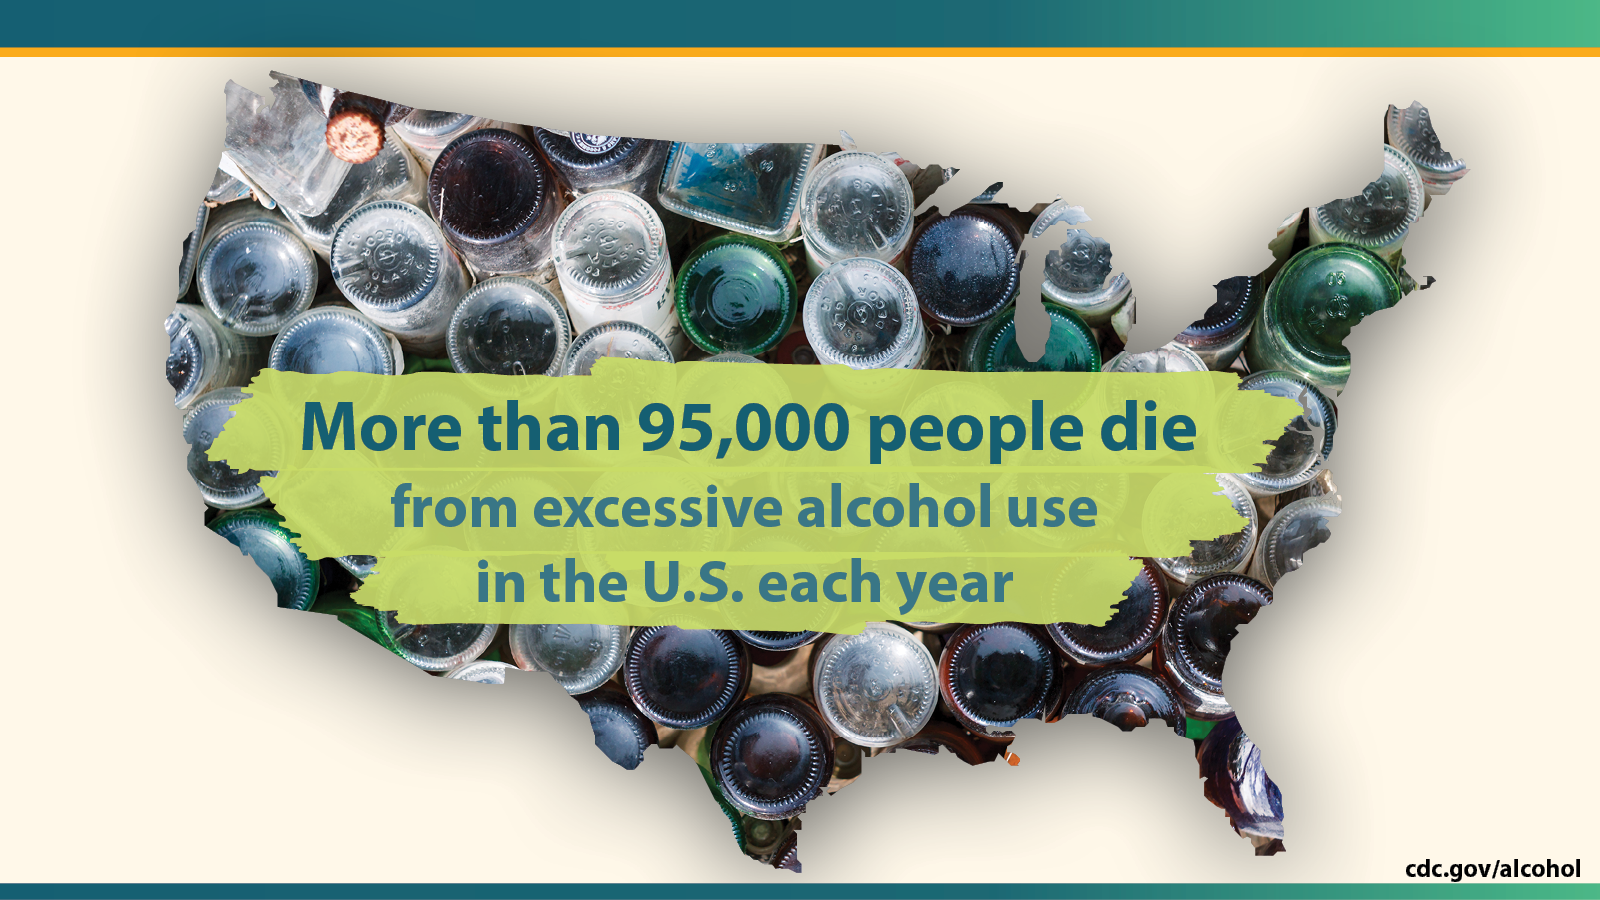 More than 95,000 people die from excessive alcohol use in the U.S. each year